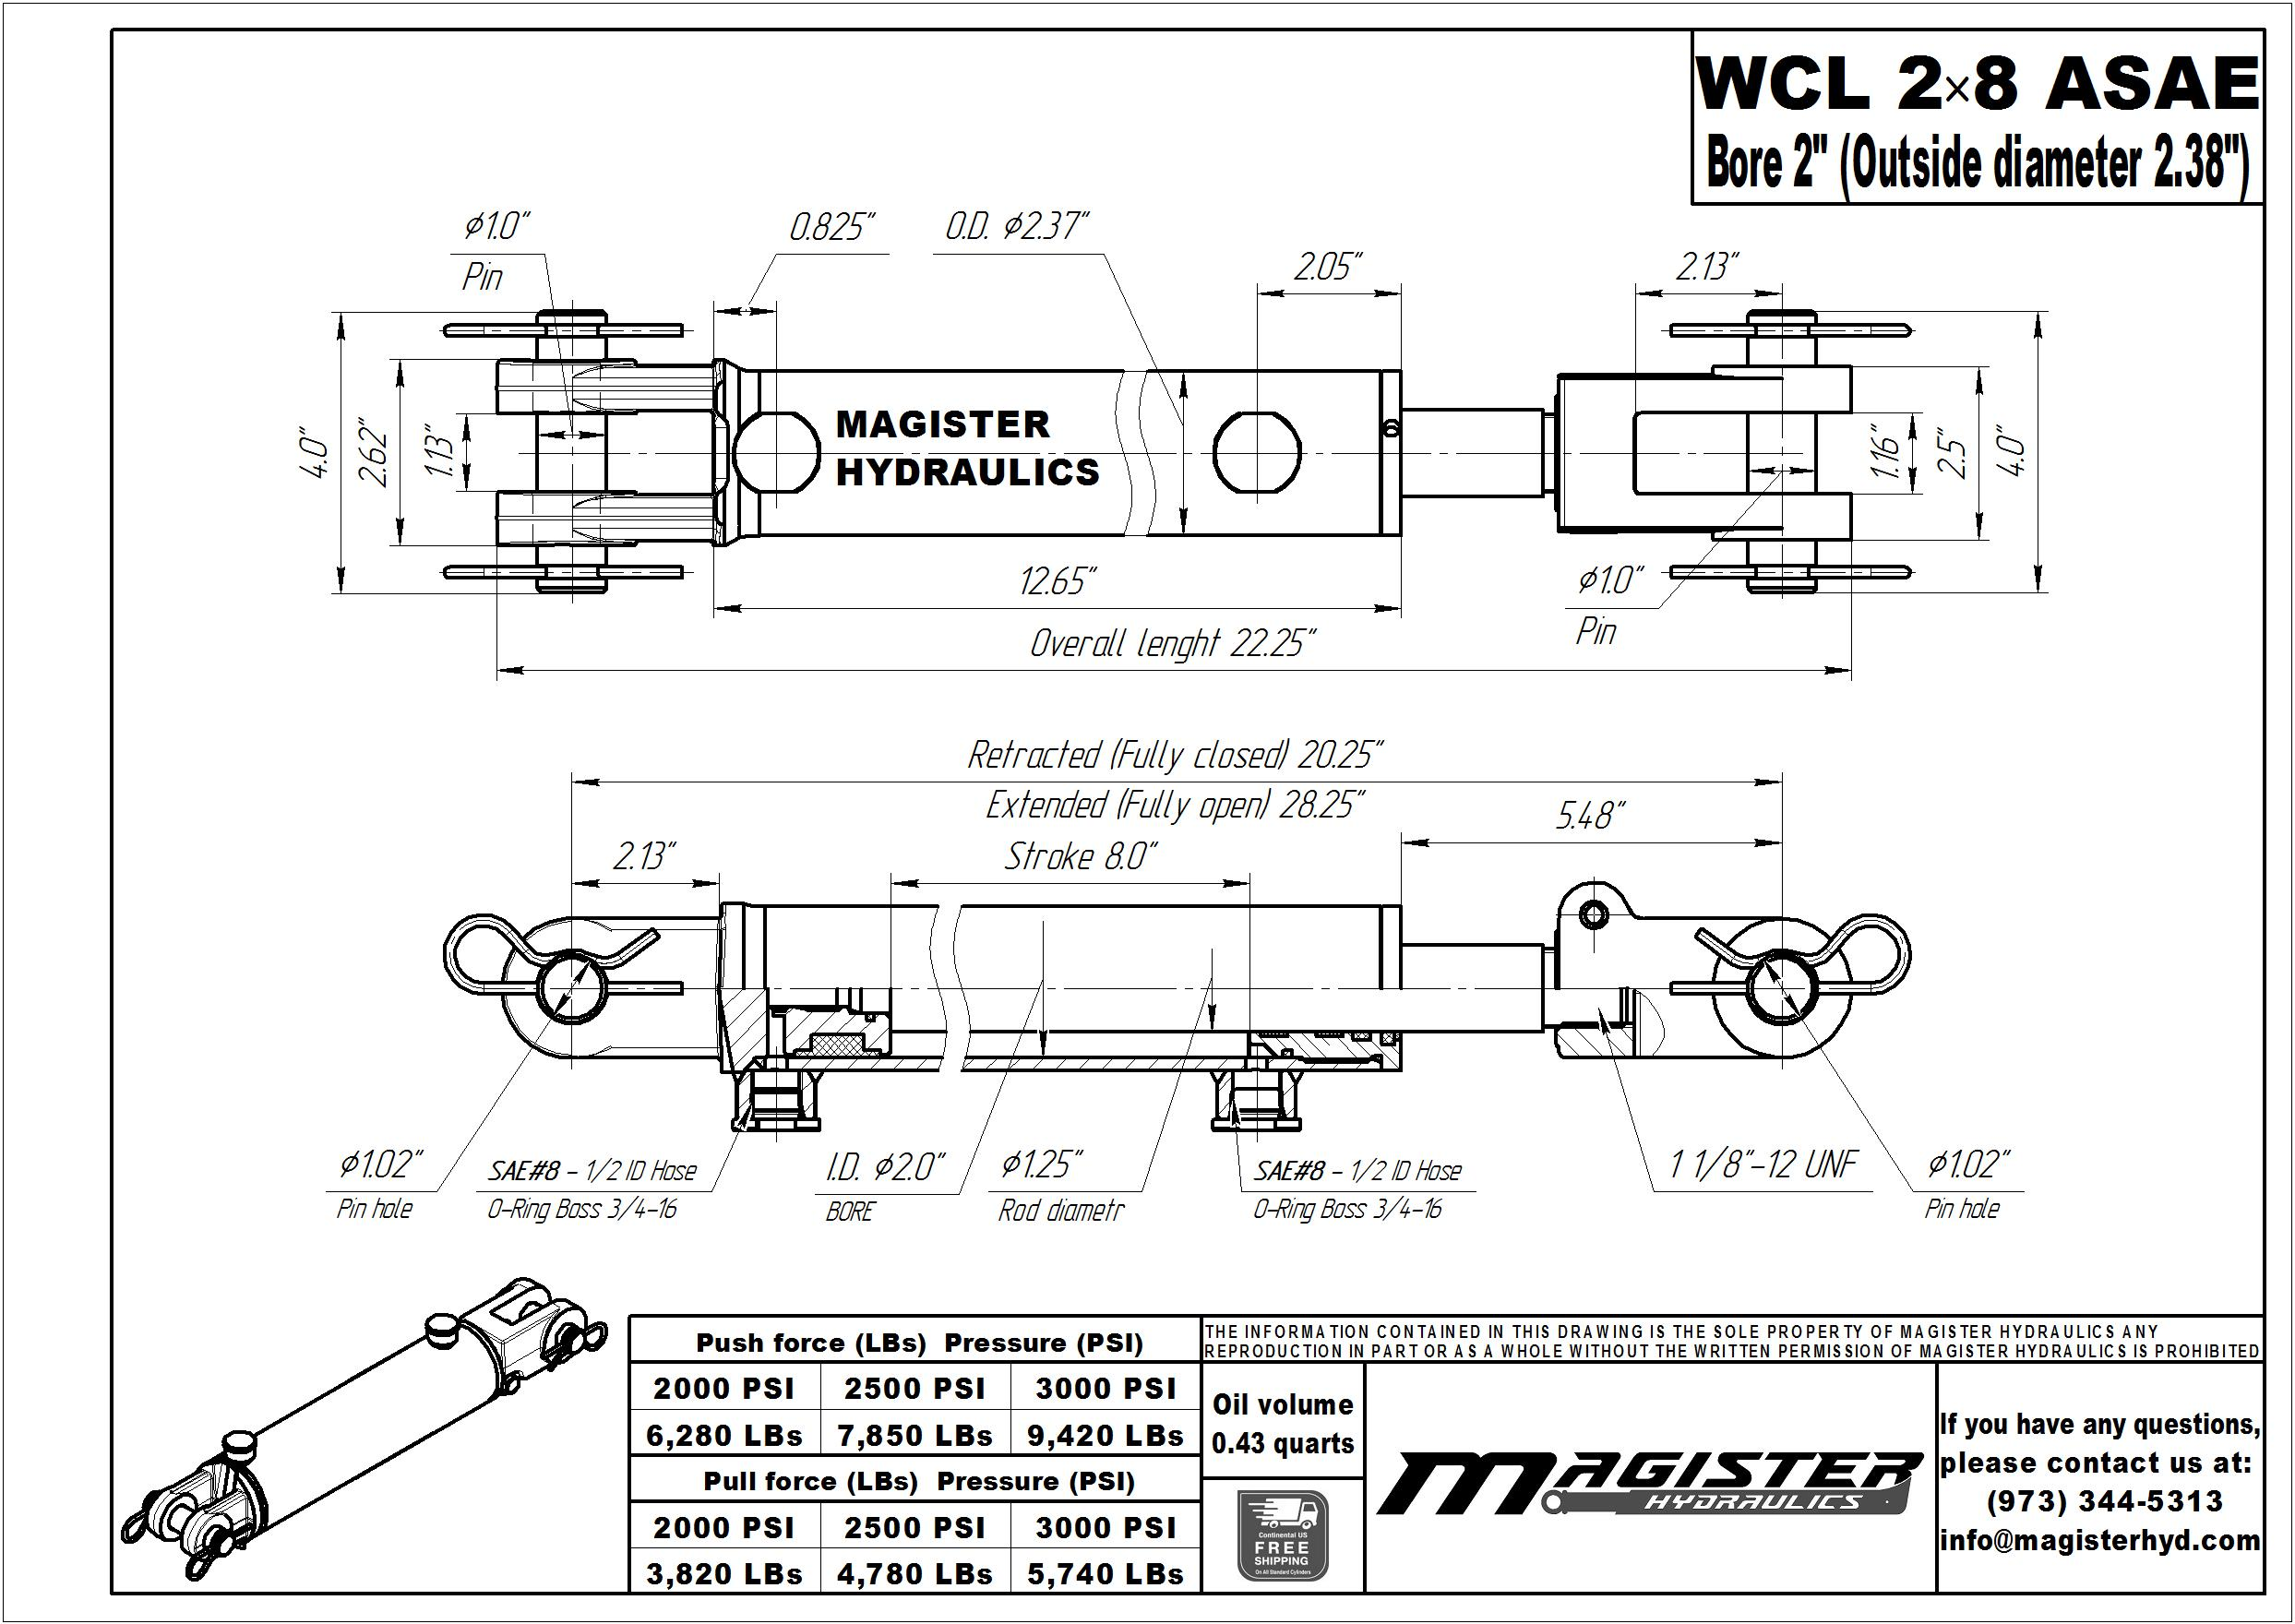 2 bore x 8 ASAE stroke hydraulic cylinder, welded clevis double acting cylinder | Magister Hydraulics